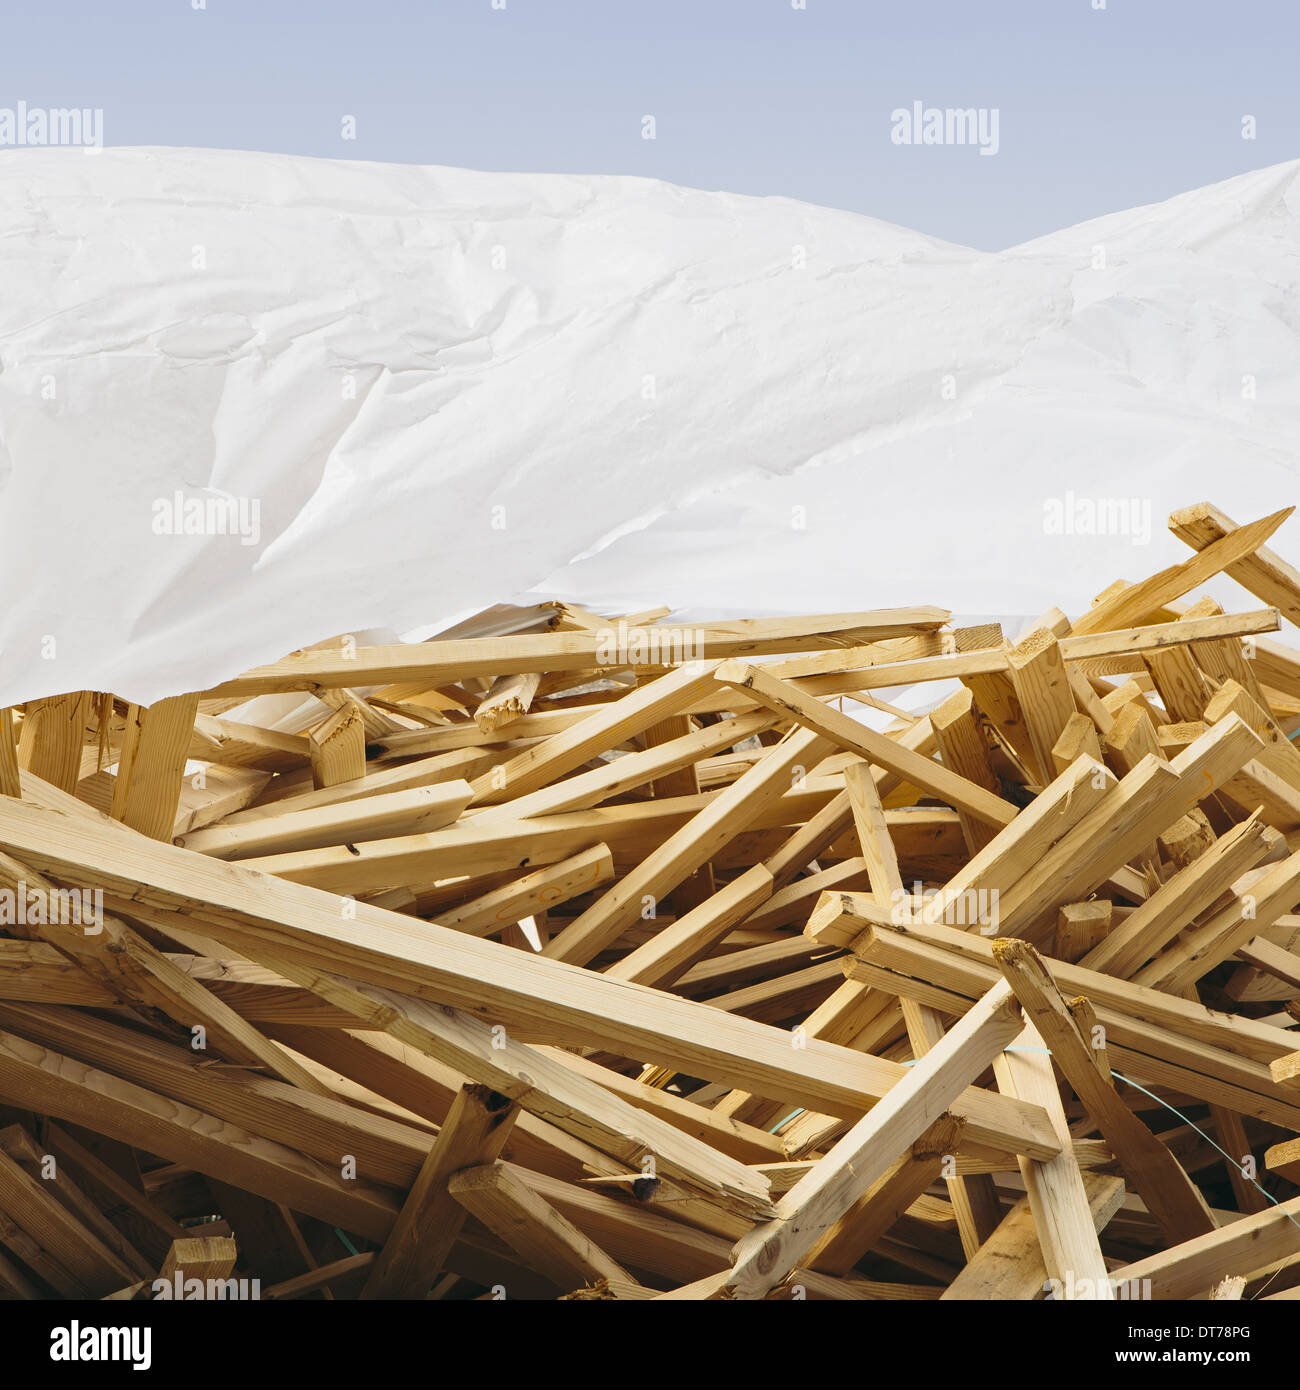 Wood Piling Construction : White tarp covering pile of wood studs used for